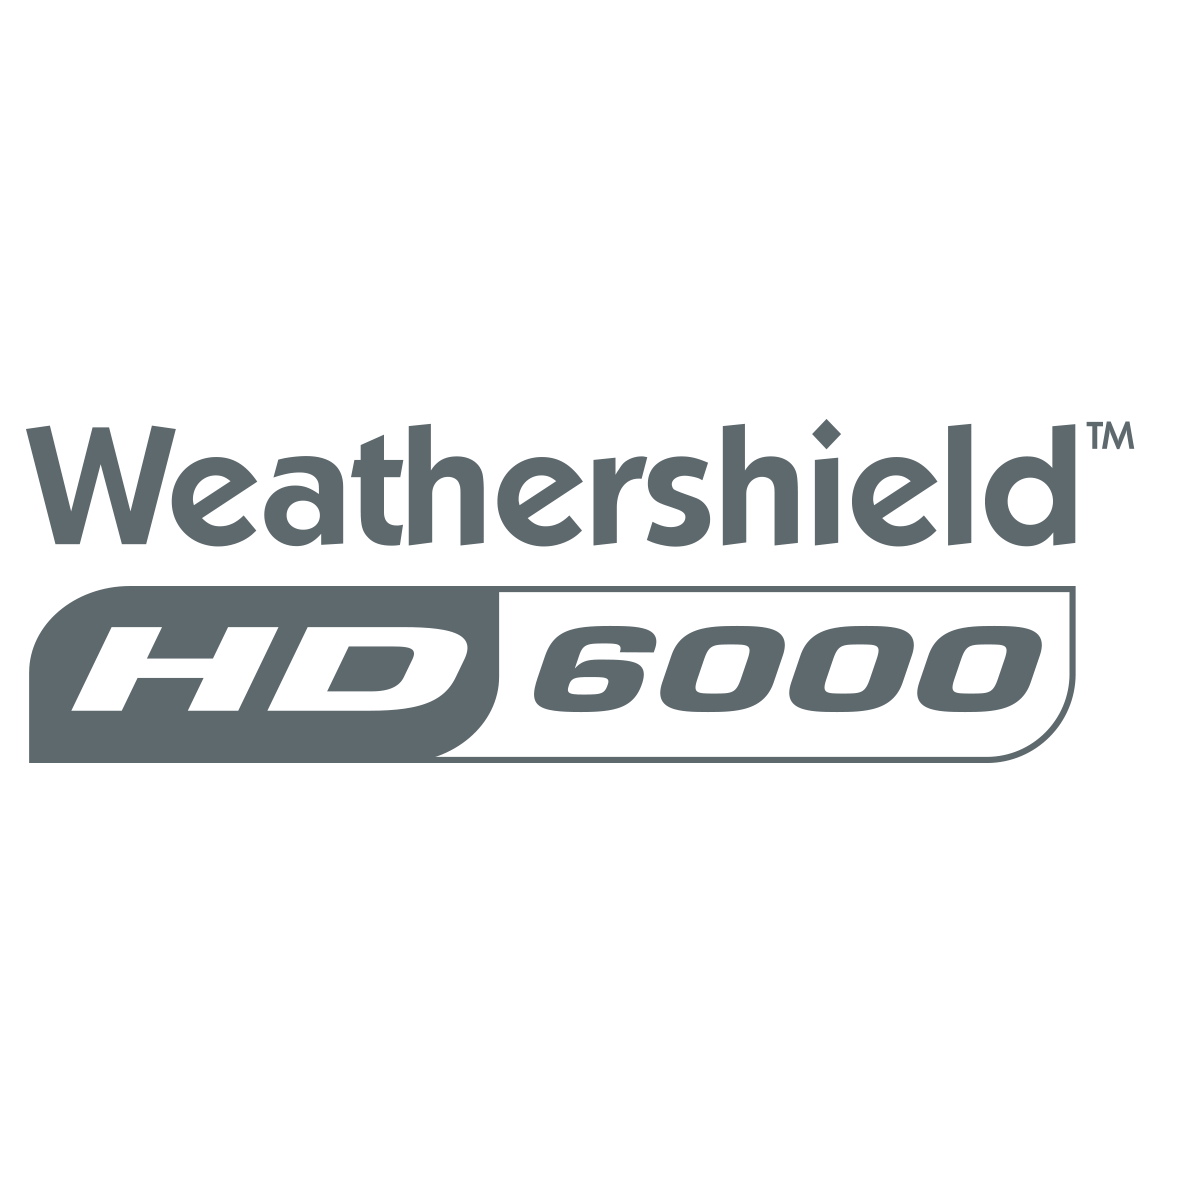 Weathershield Hd 6000 Logo Charcoal